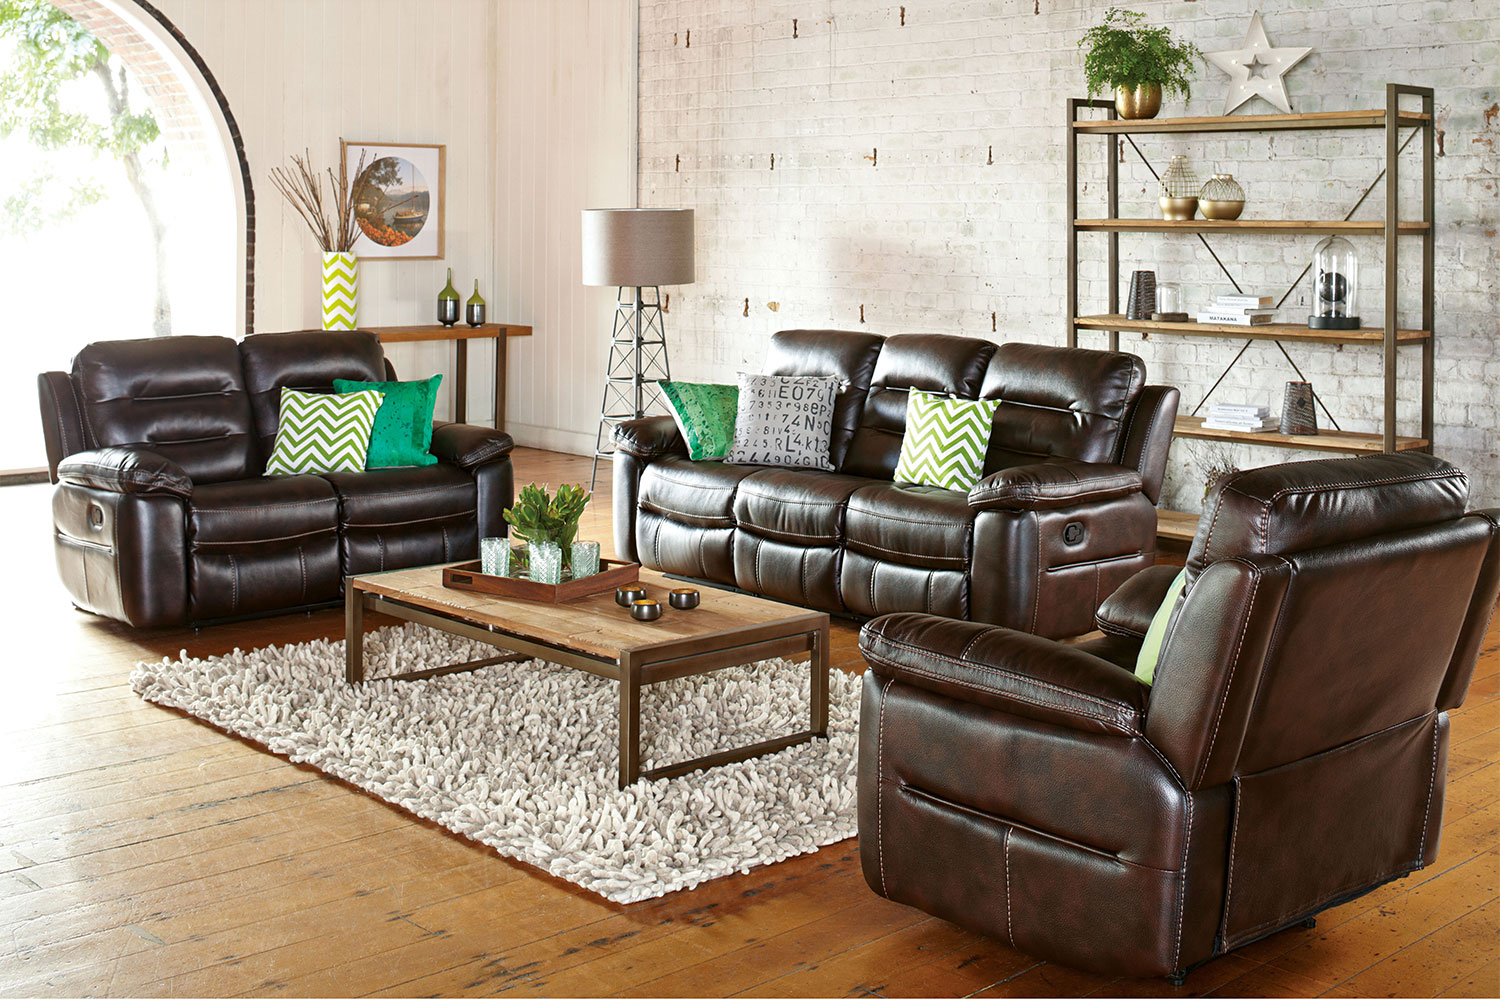 Somerset 3 Piece Fabric Recliner Lounge Suite